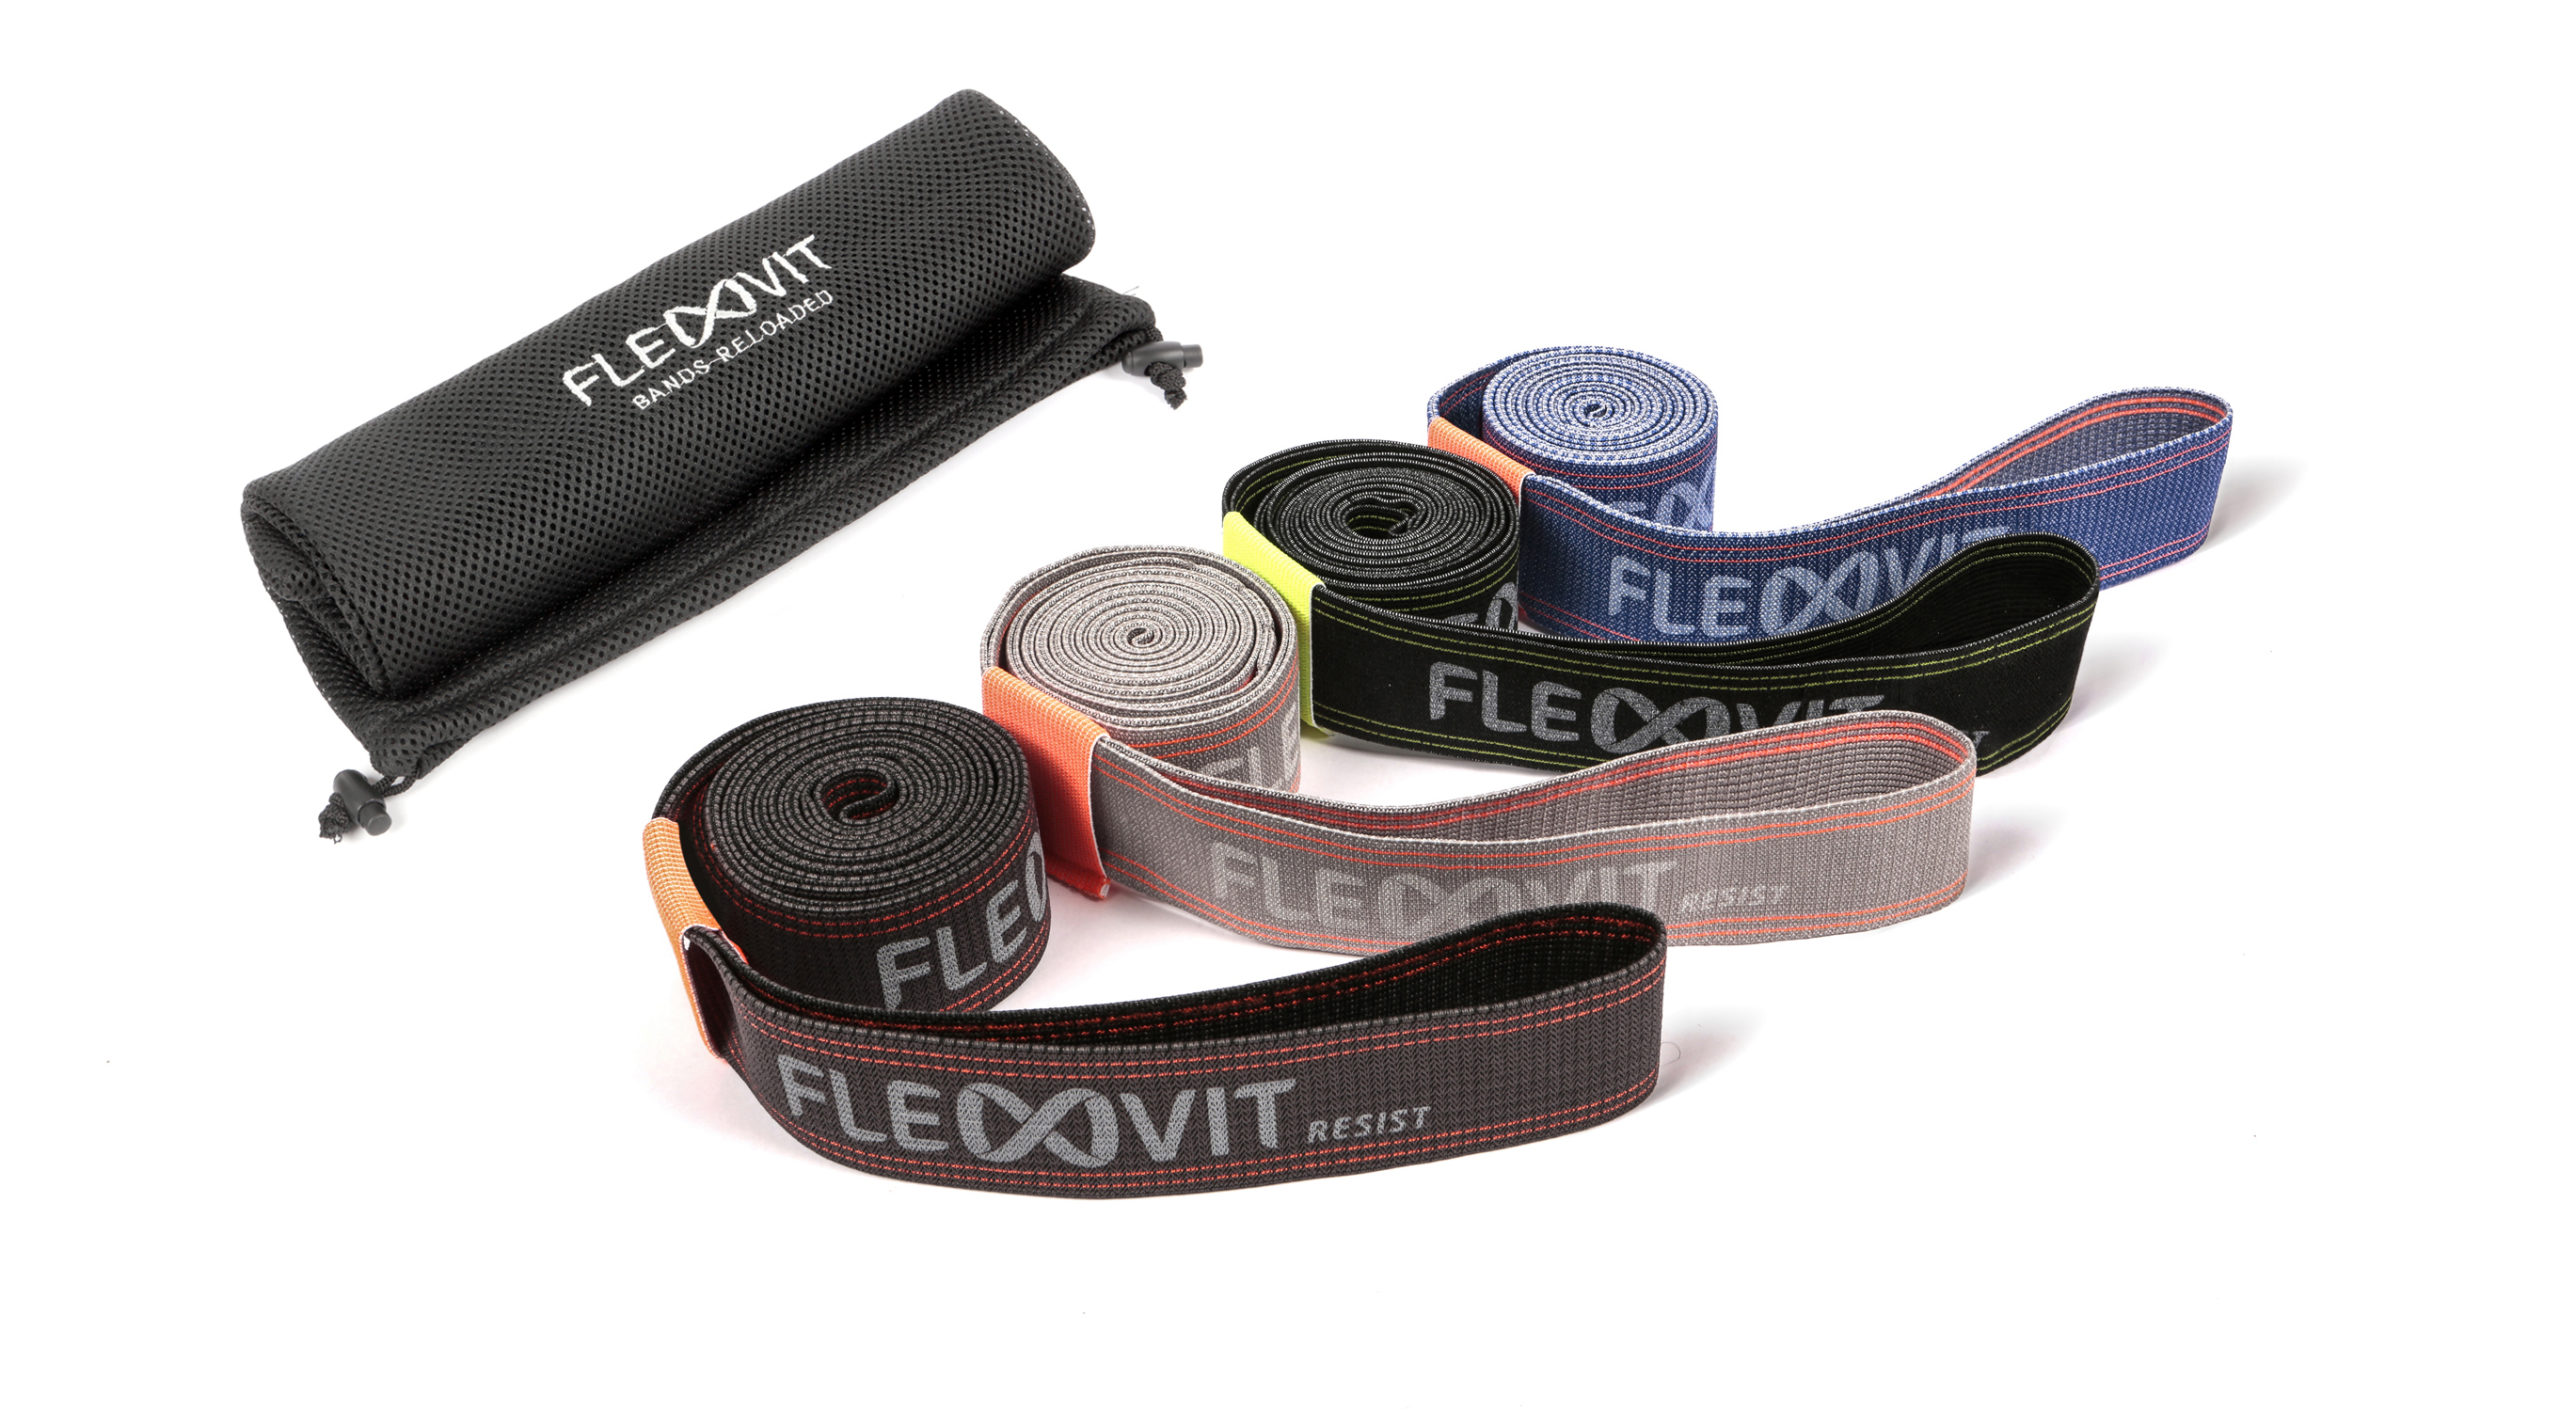 Flexvit Resistance Bands